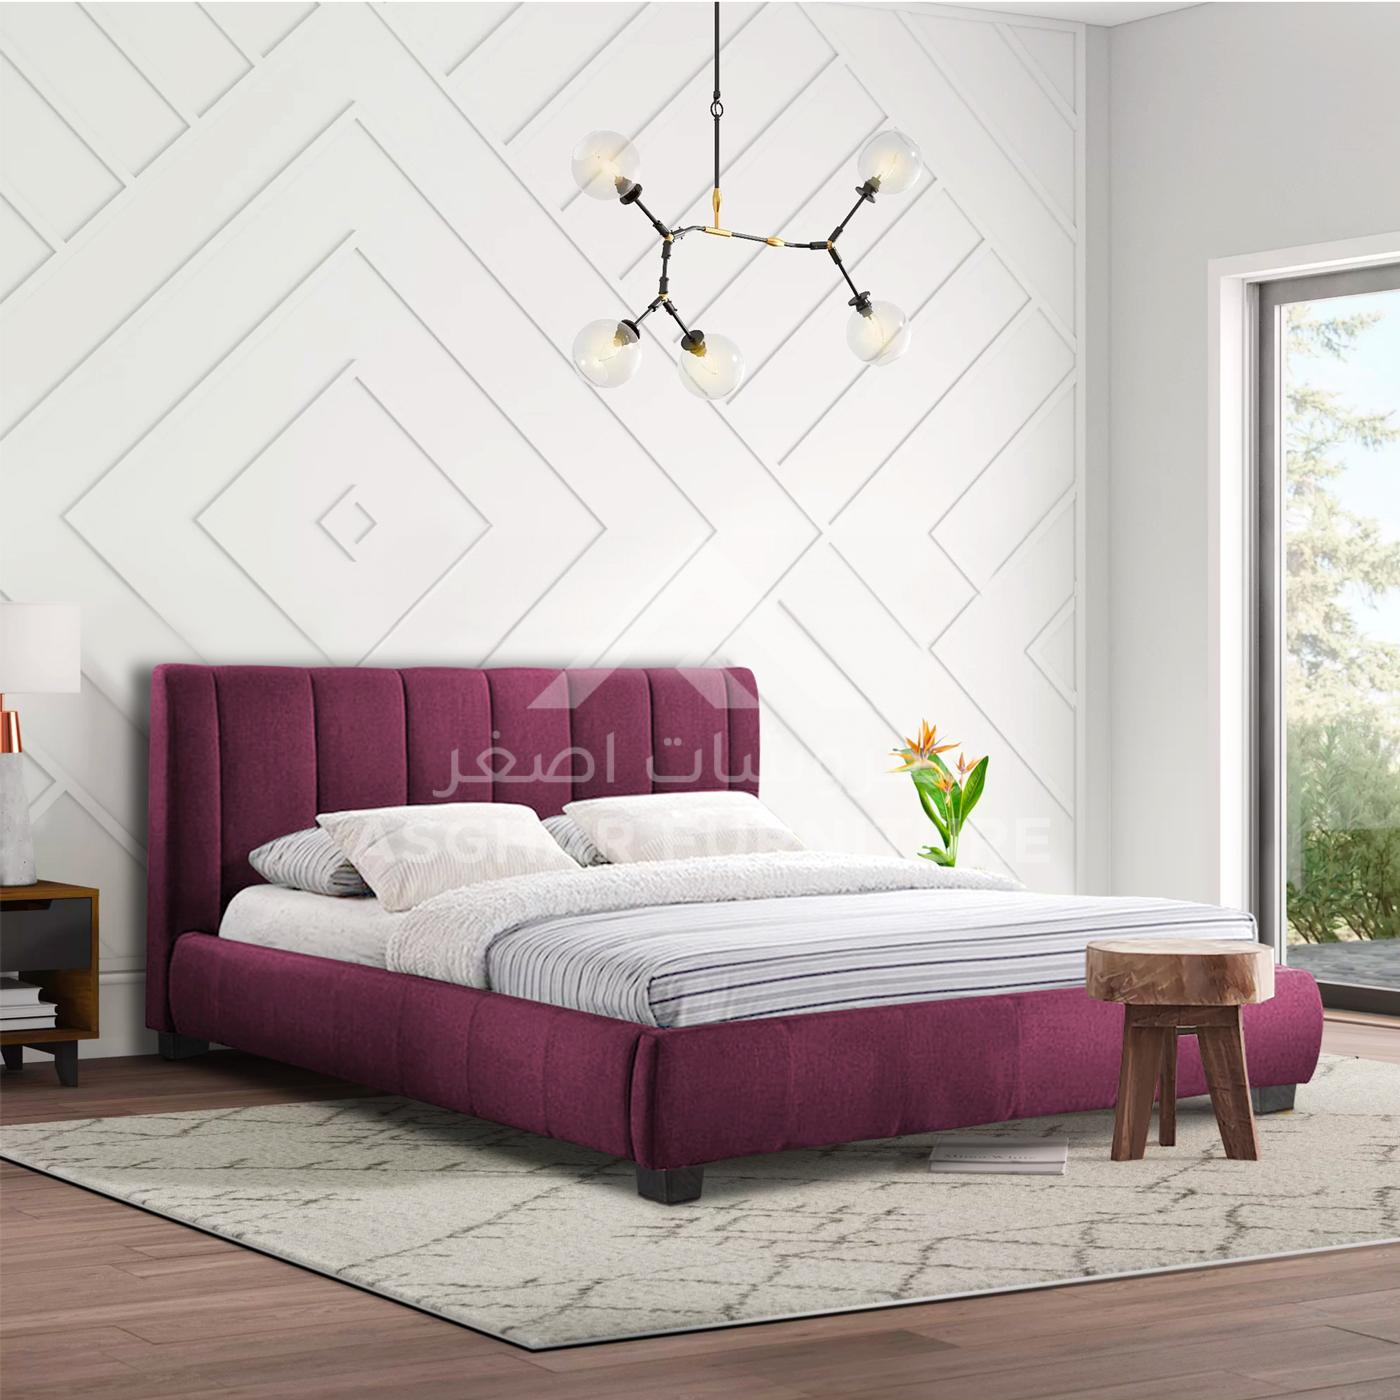 Colson fabric bed | beds furniture stores in jvc